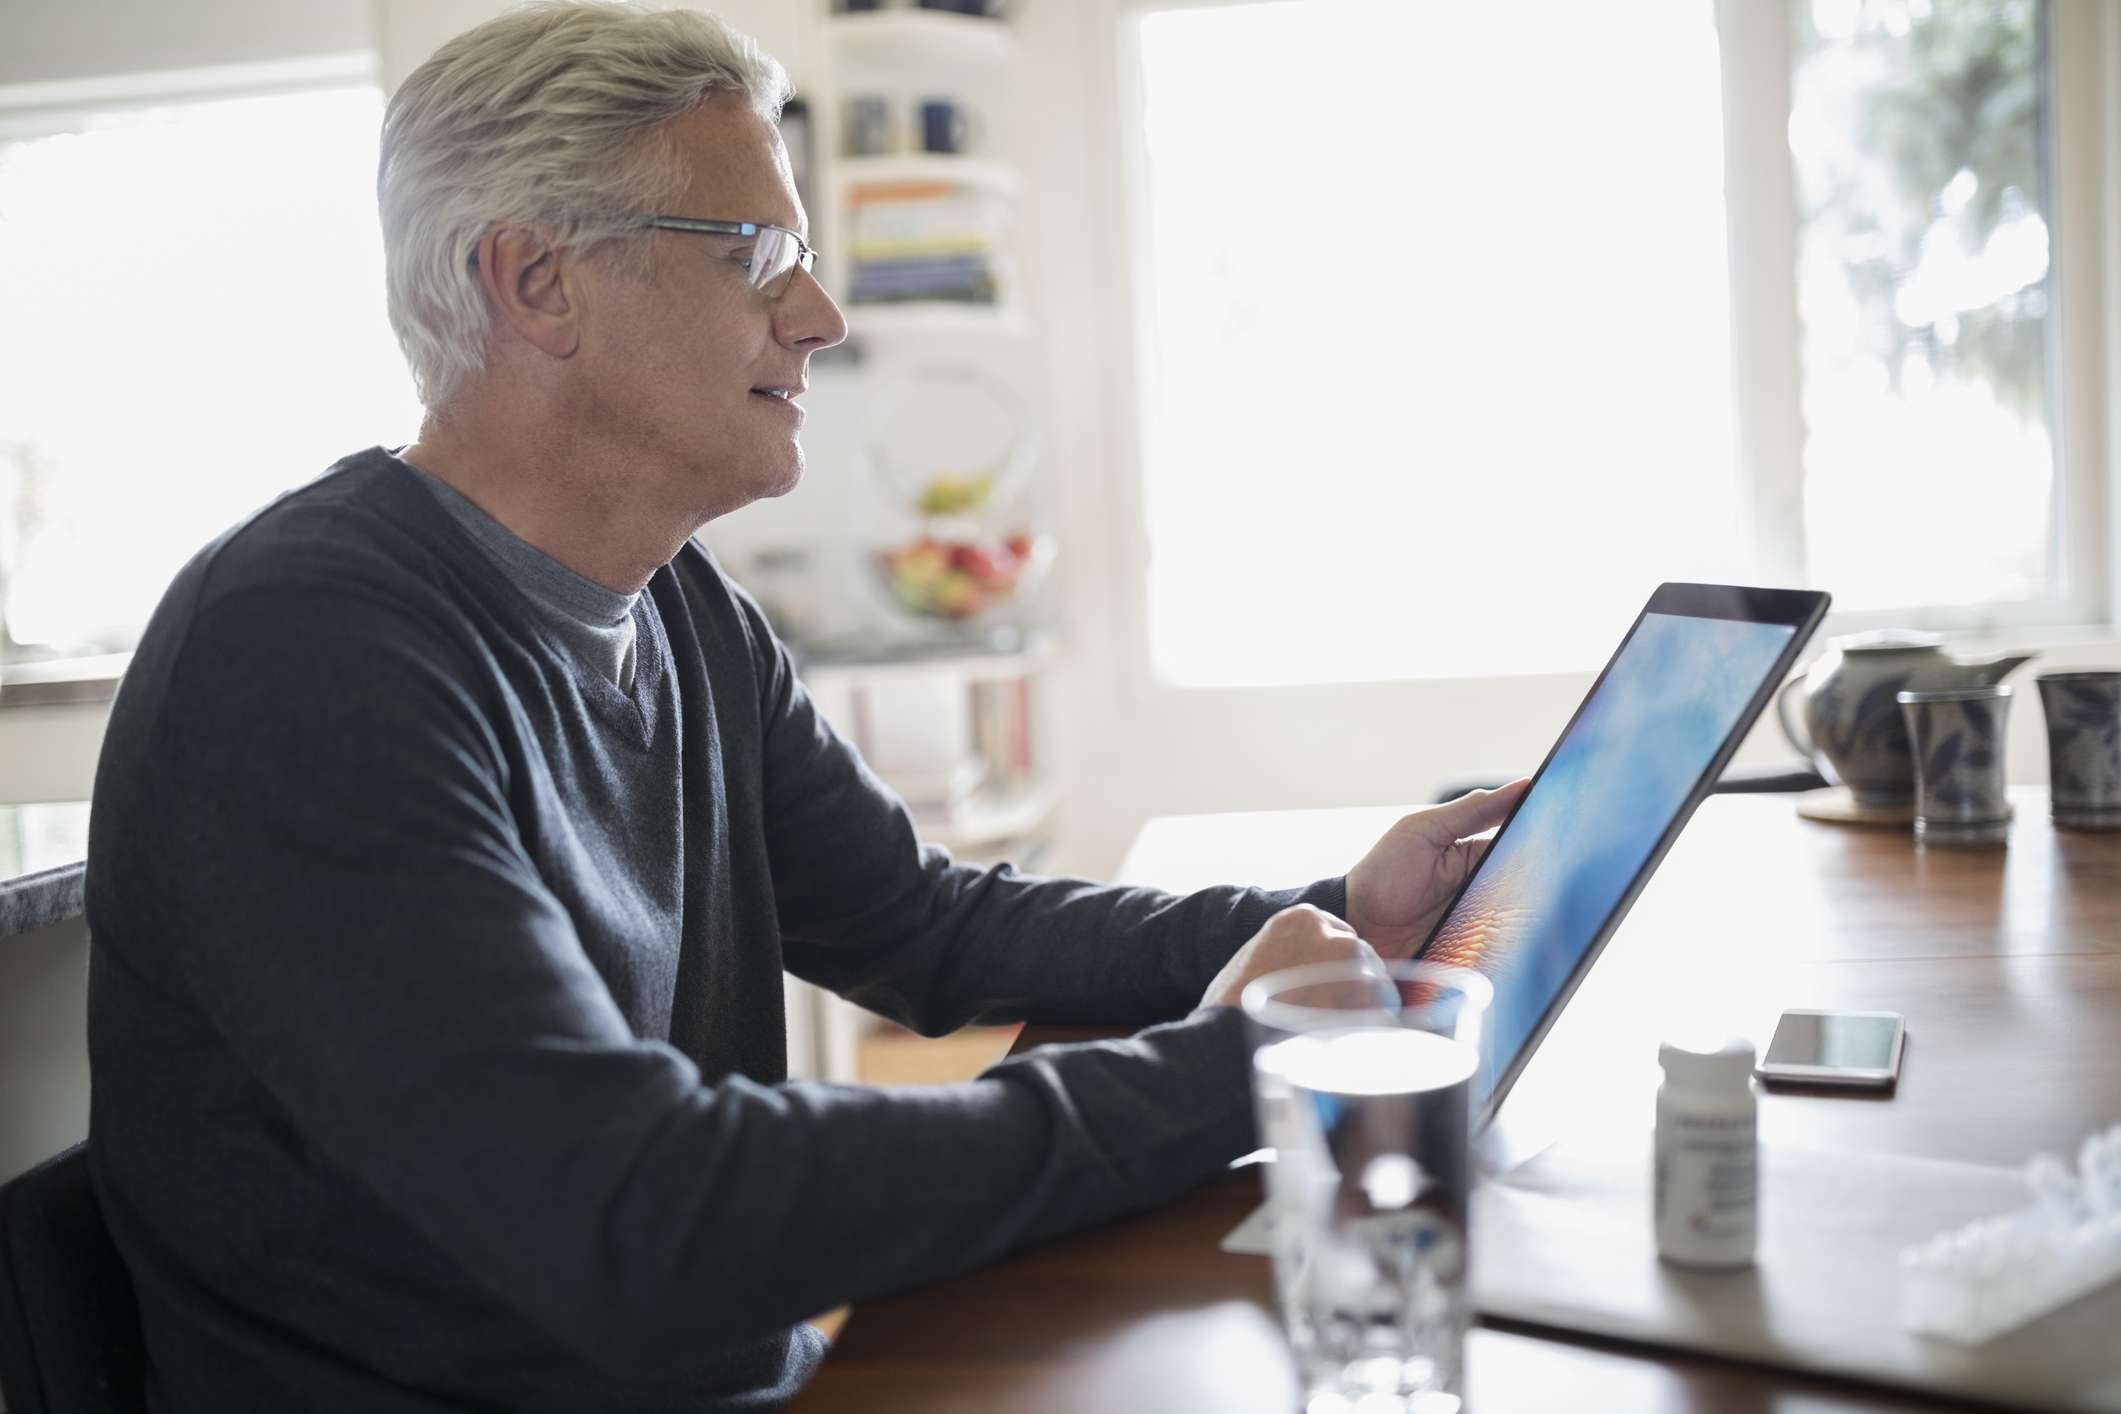 A man using his tablet at the dining room table